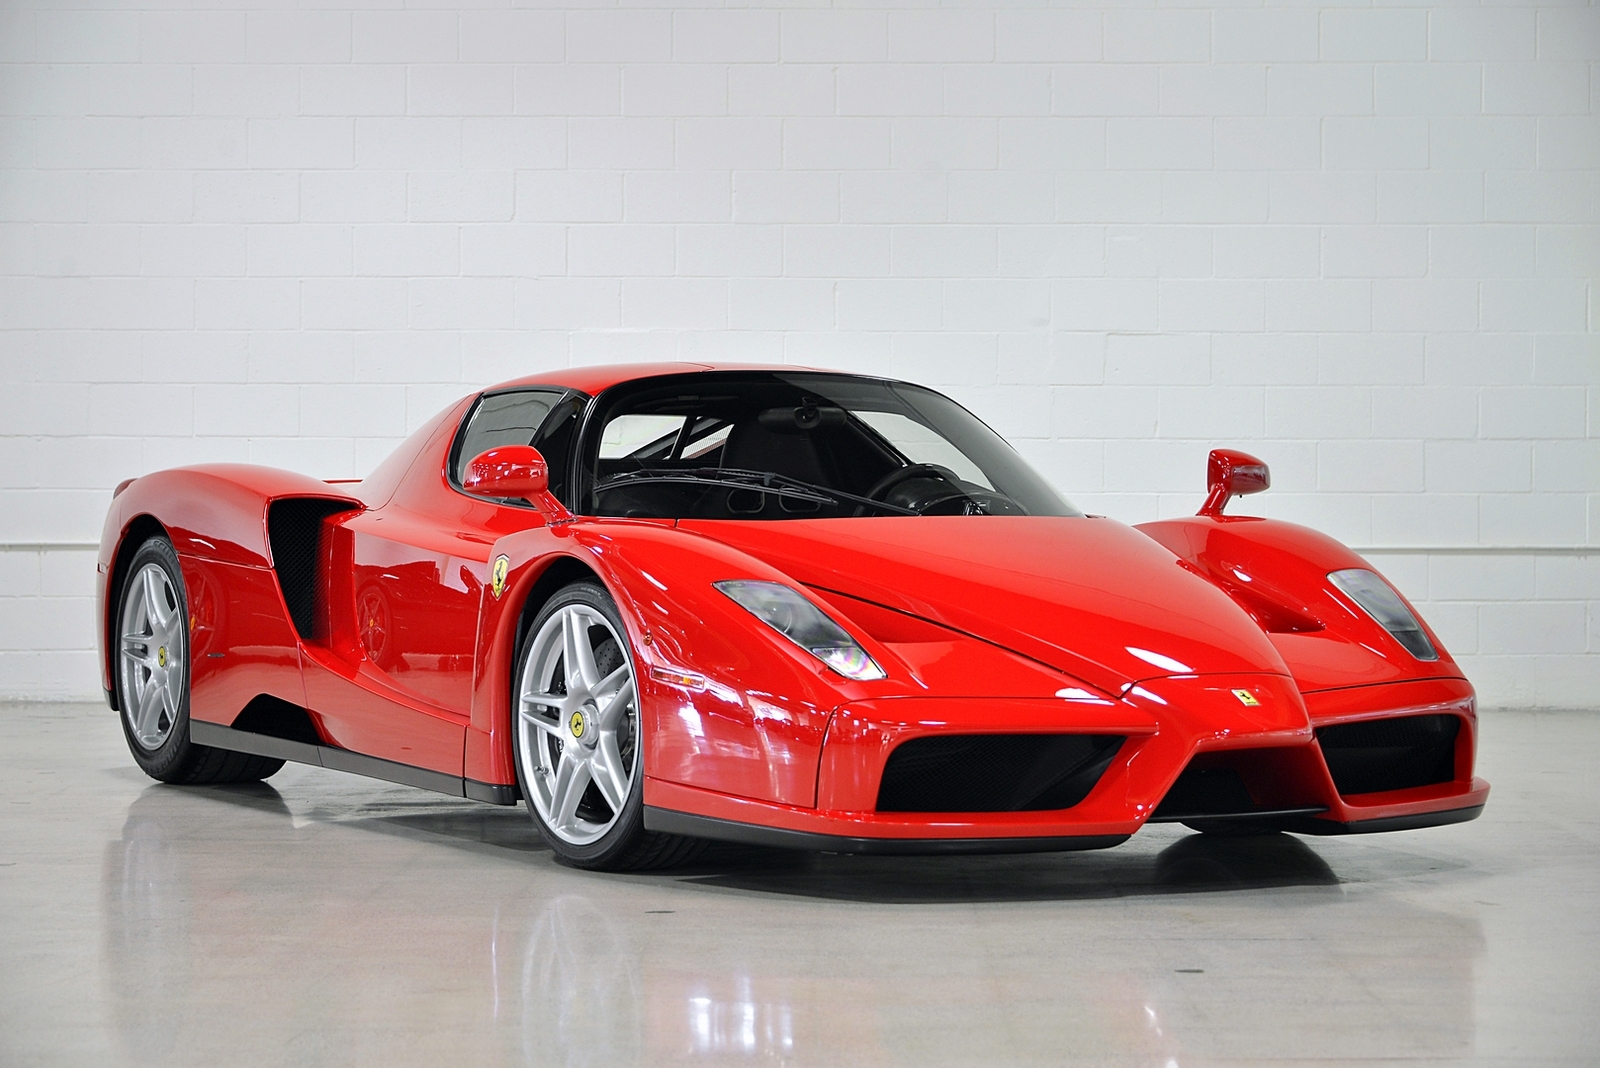 Floyd Mayweather's Ferrari Enzo Up For Sale Again. 17th June 2015